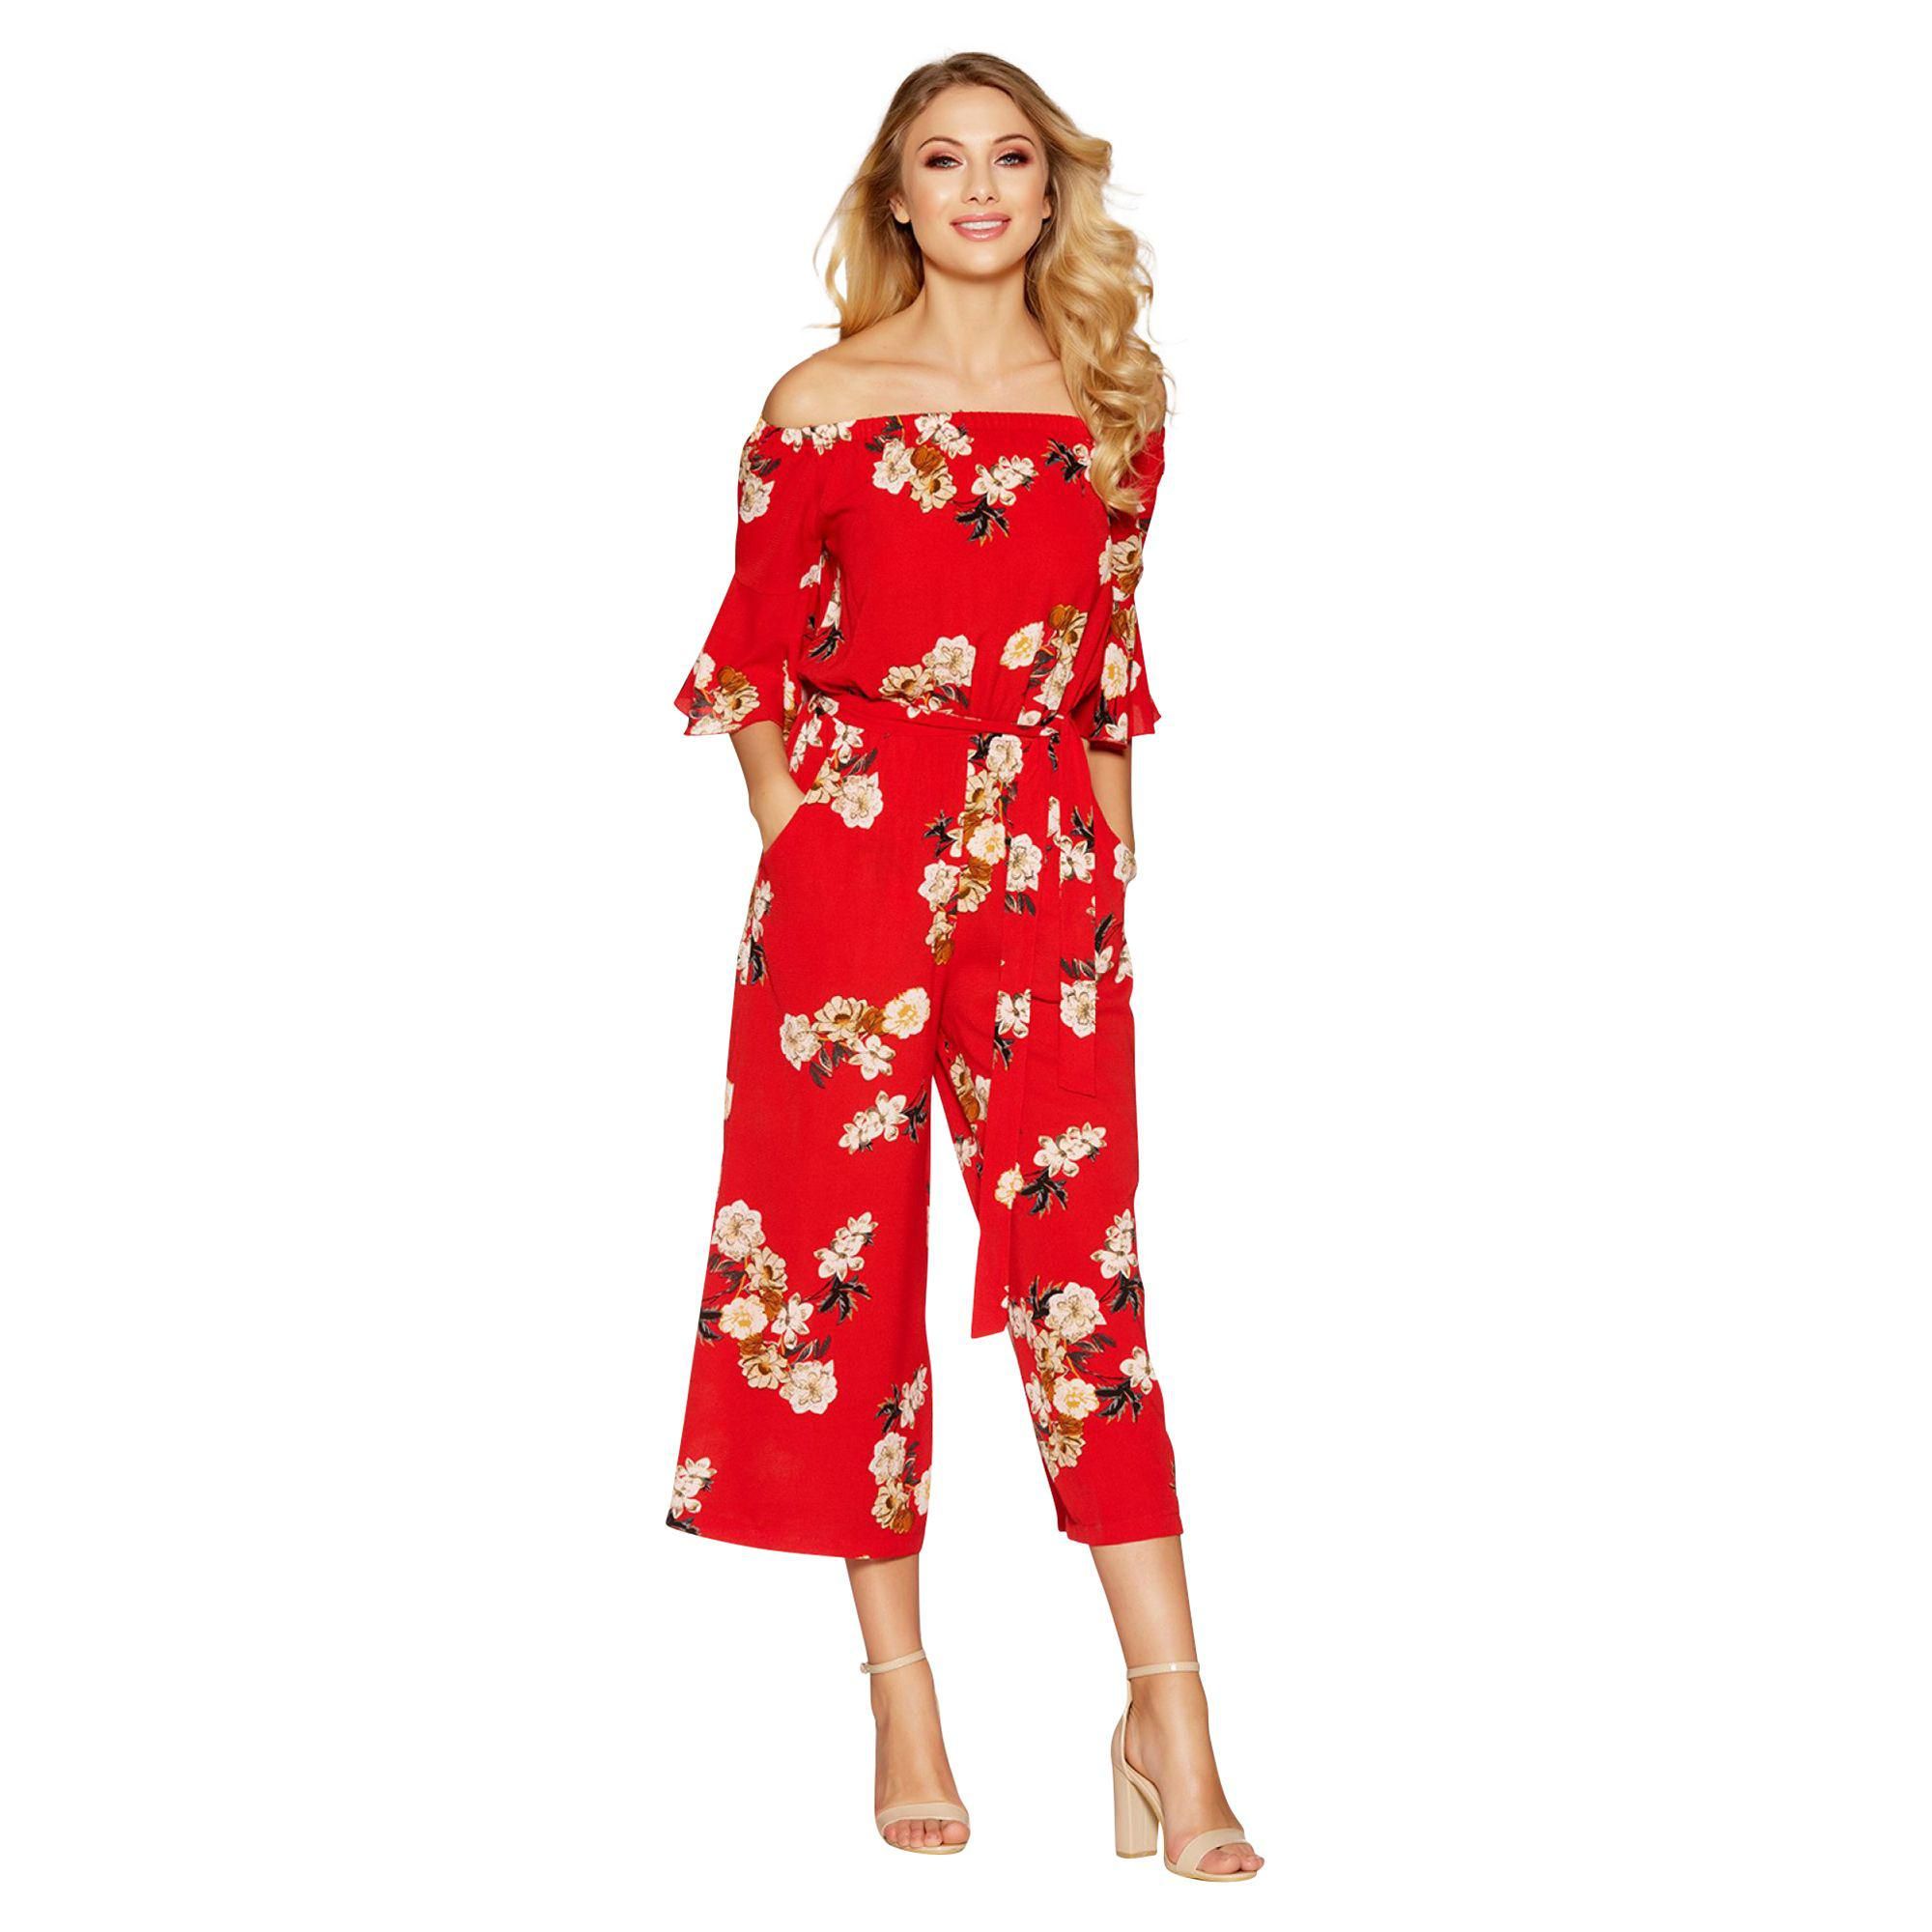 445d6fa4f048 Quiz Red Floral Print Frill Sleeve Culotte Jumpsuit in Red - Save 41 ...